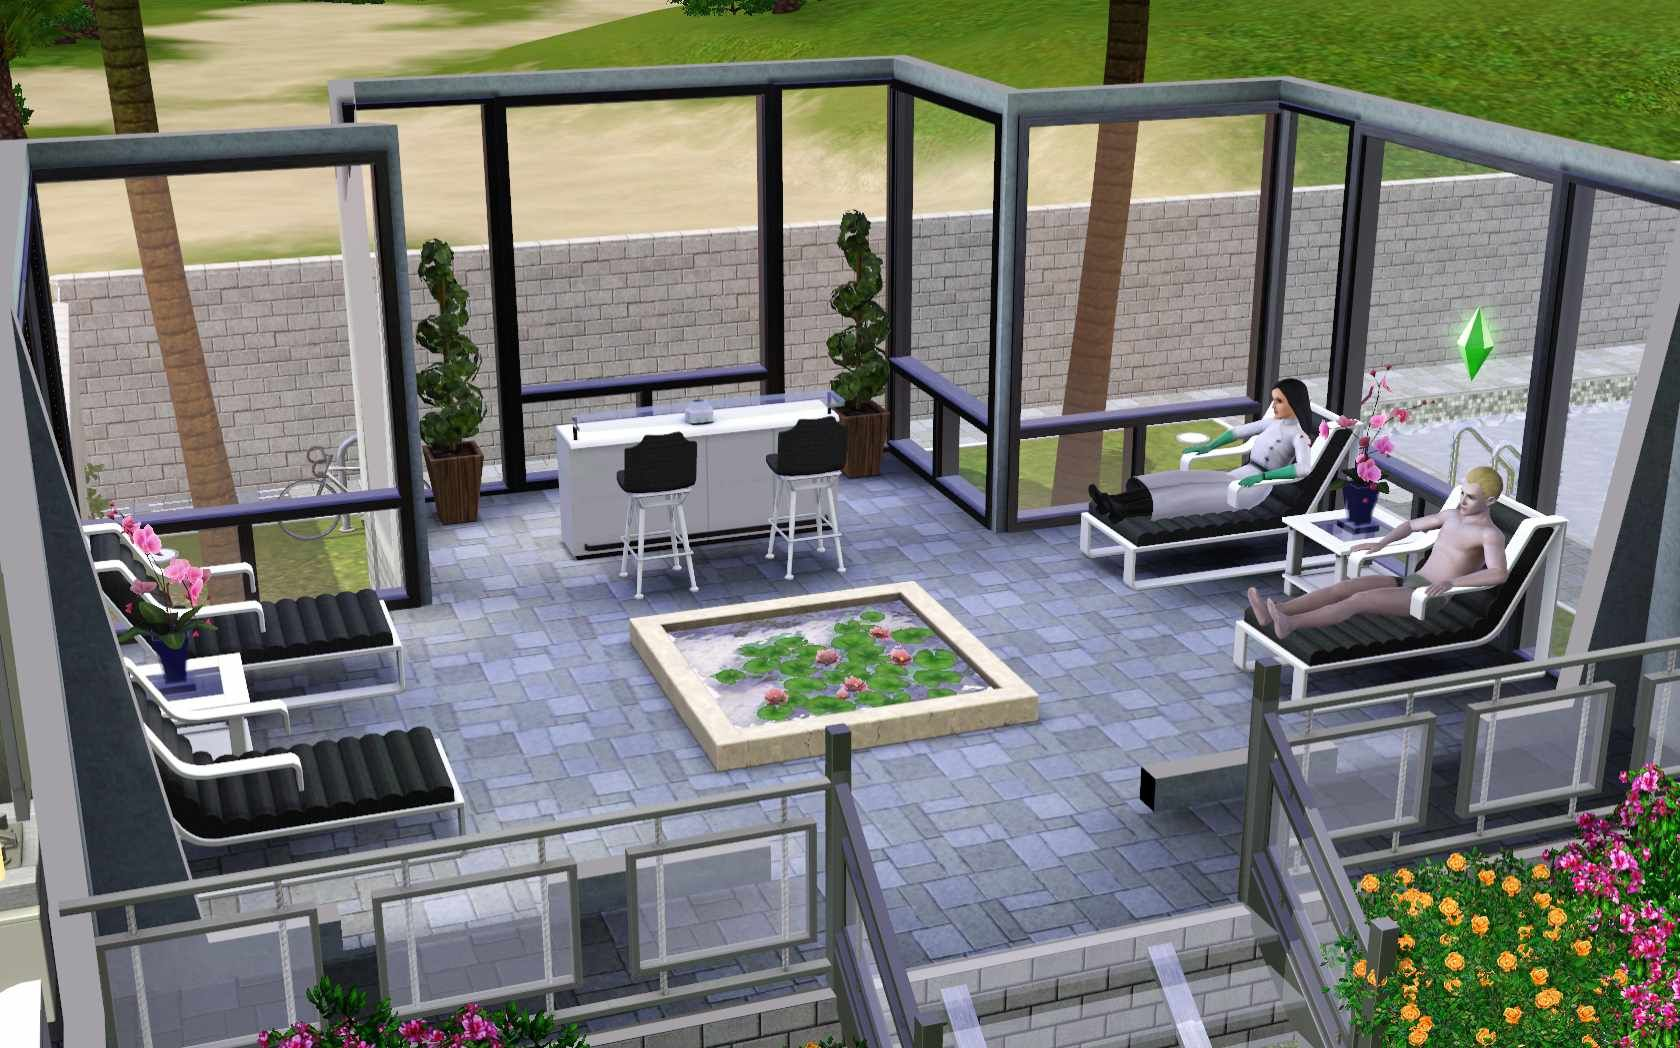 The sims 3 home building and design video game designs for Sims 3 garden design ideas